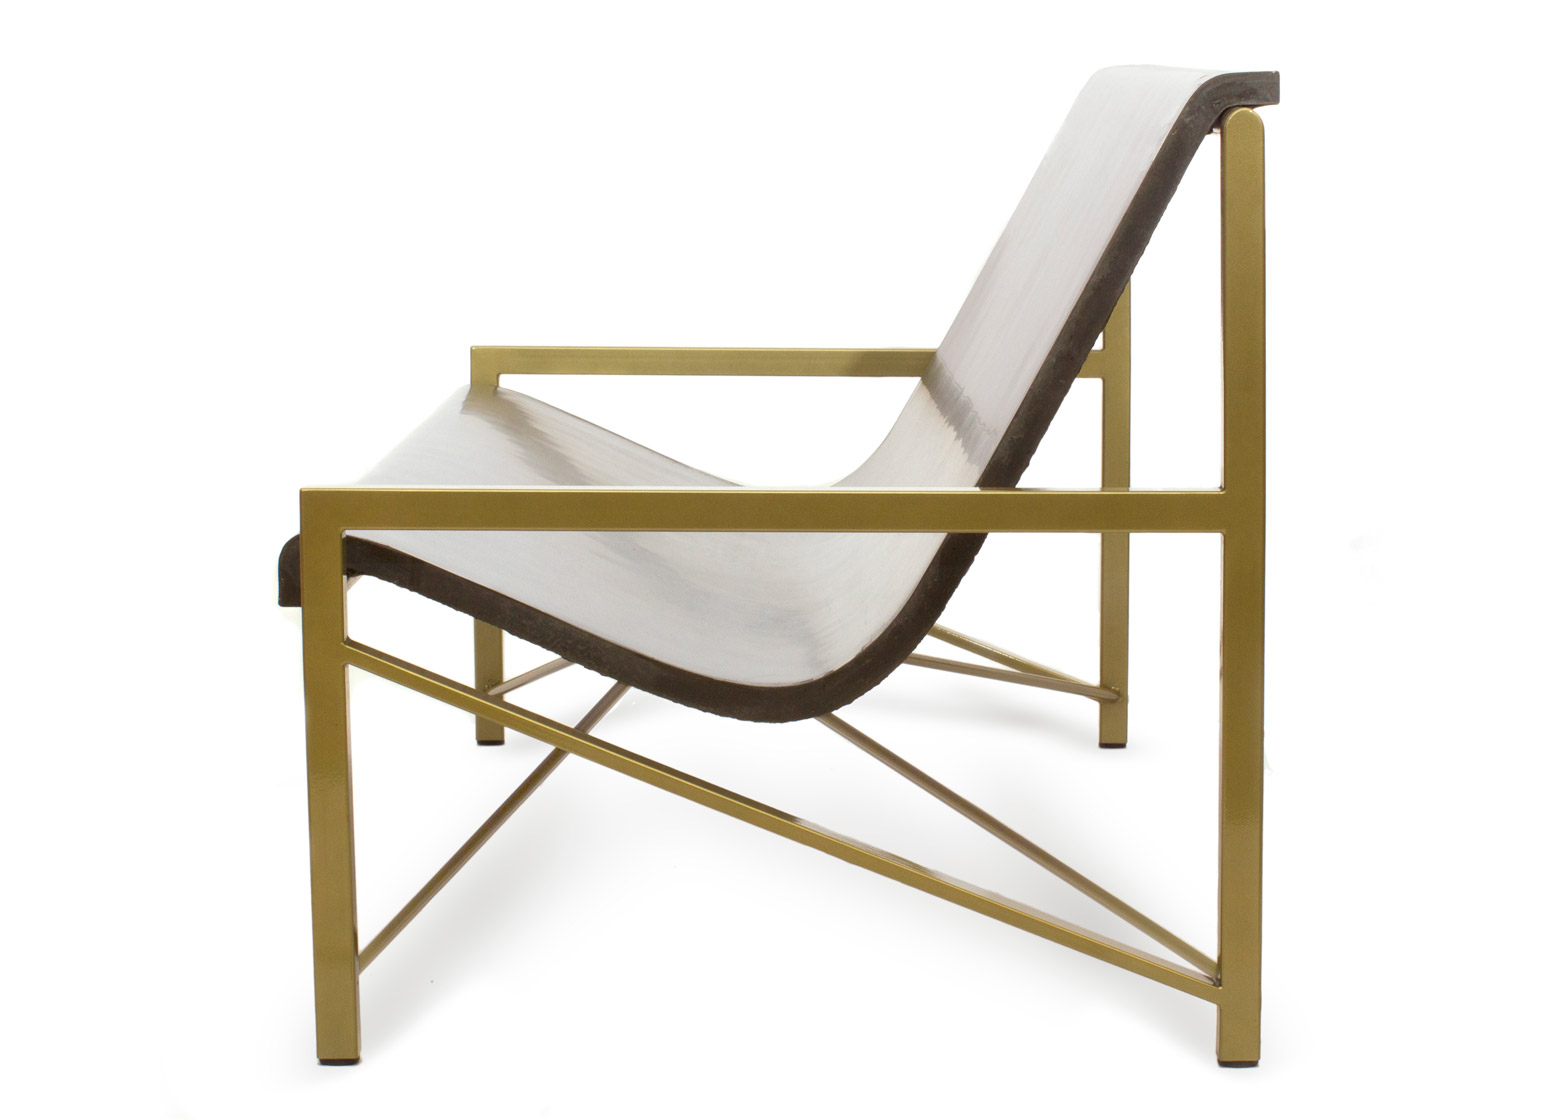 Galanter & Jones heated furniture at ICFF